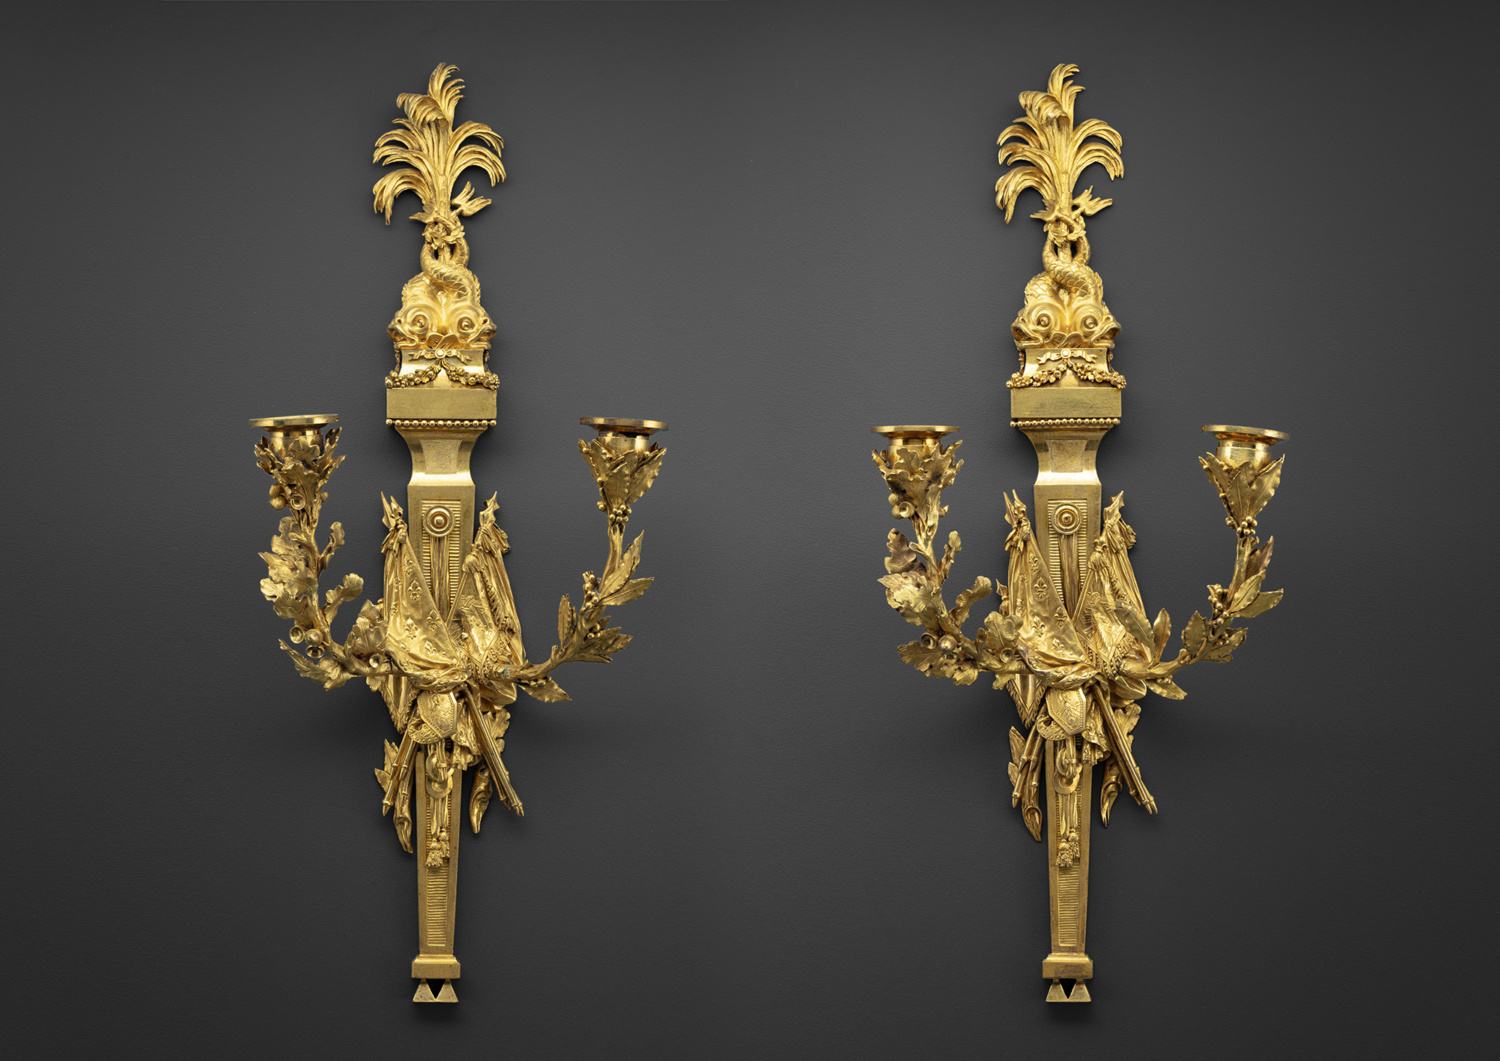 Pair of two-light gilt bronze wall sconces - Galerie Kugel